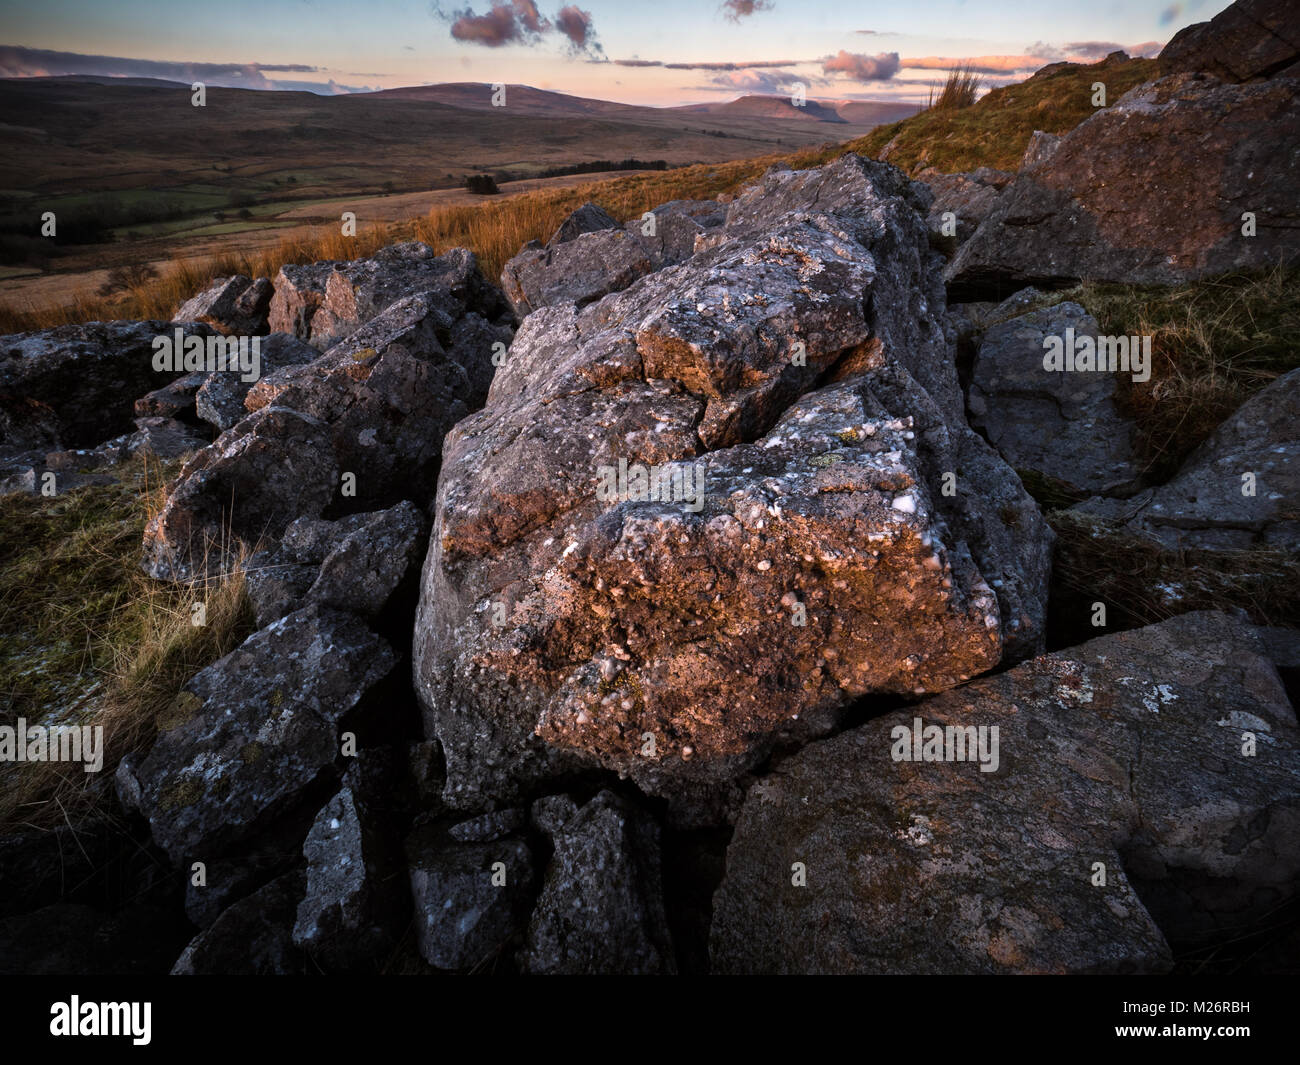 Welsh Landscape at Sunset - Stock Image